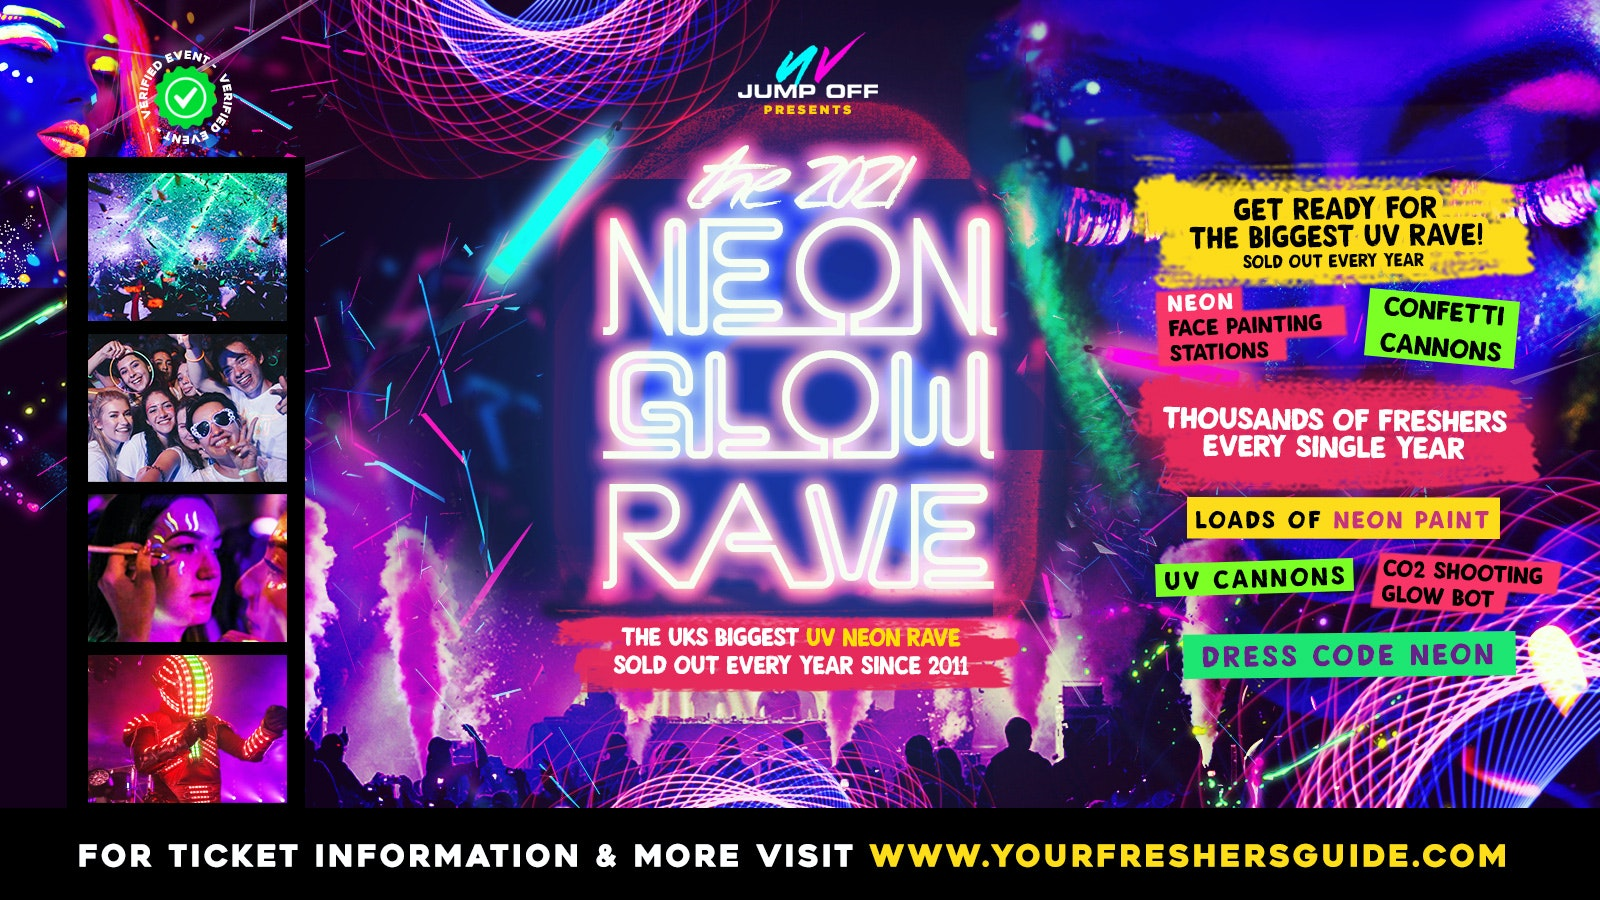 Neon Glow Rave   Surrey Freshers 2021 // Guildford Freshers 2021 – Tickets from £3!